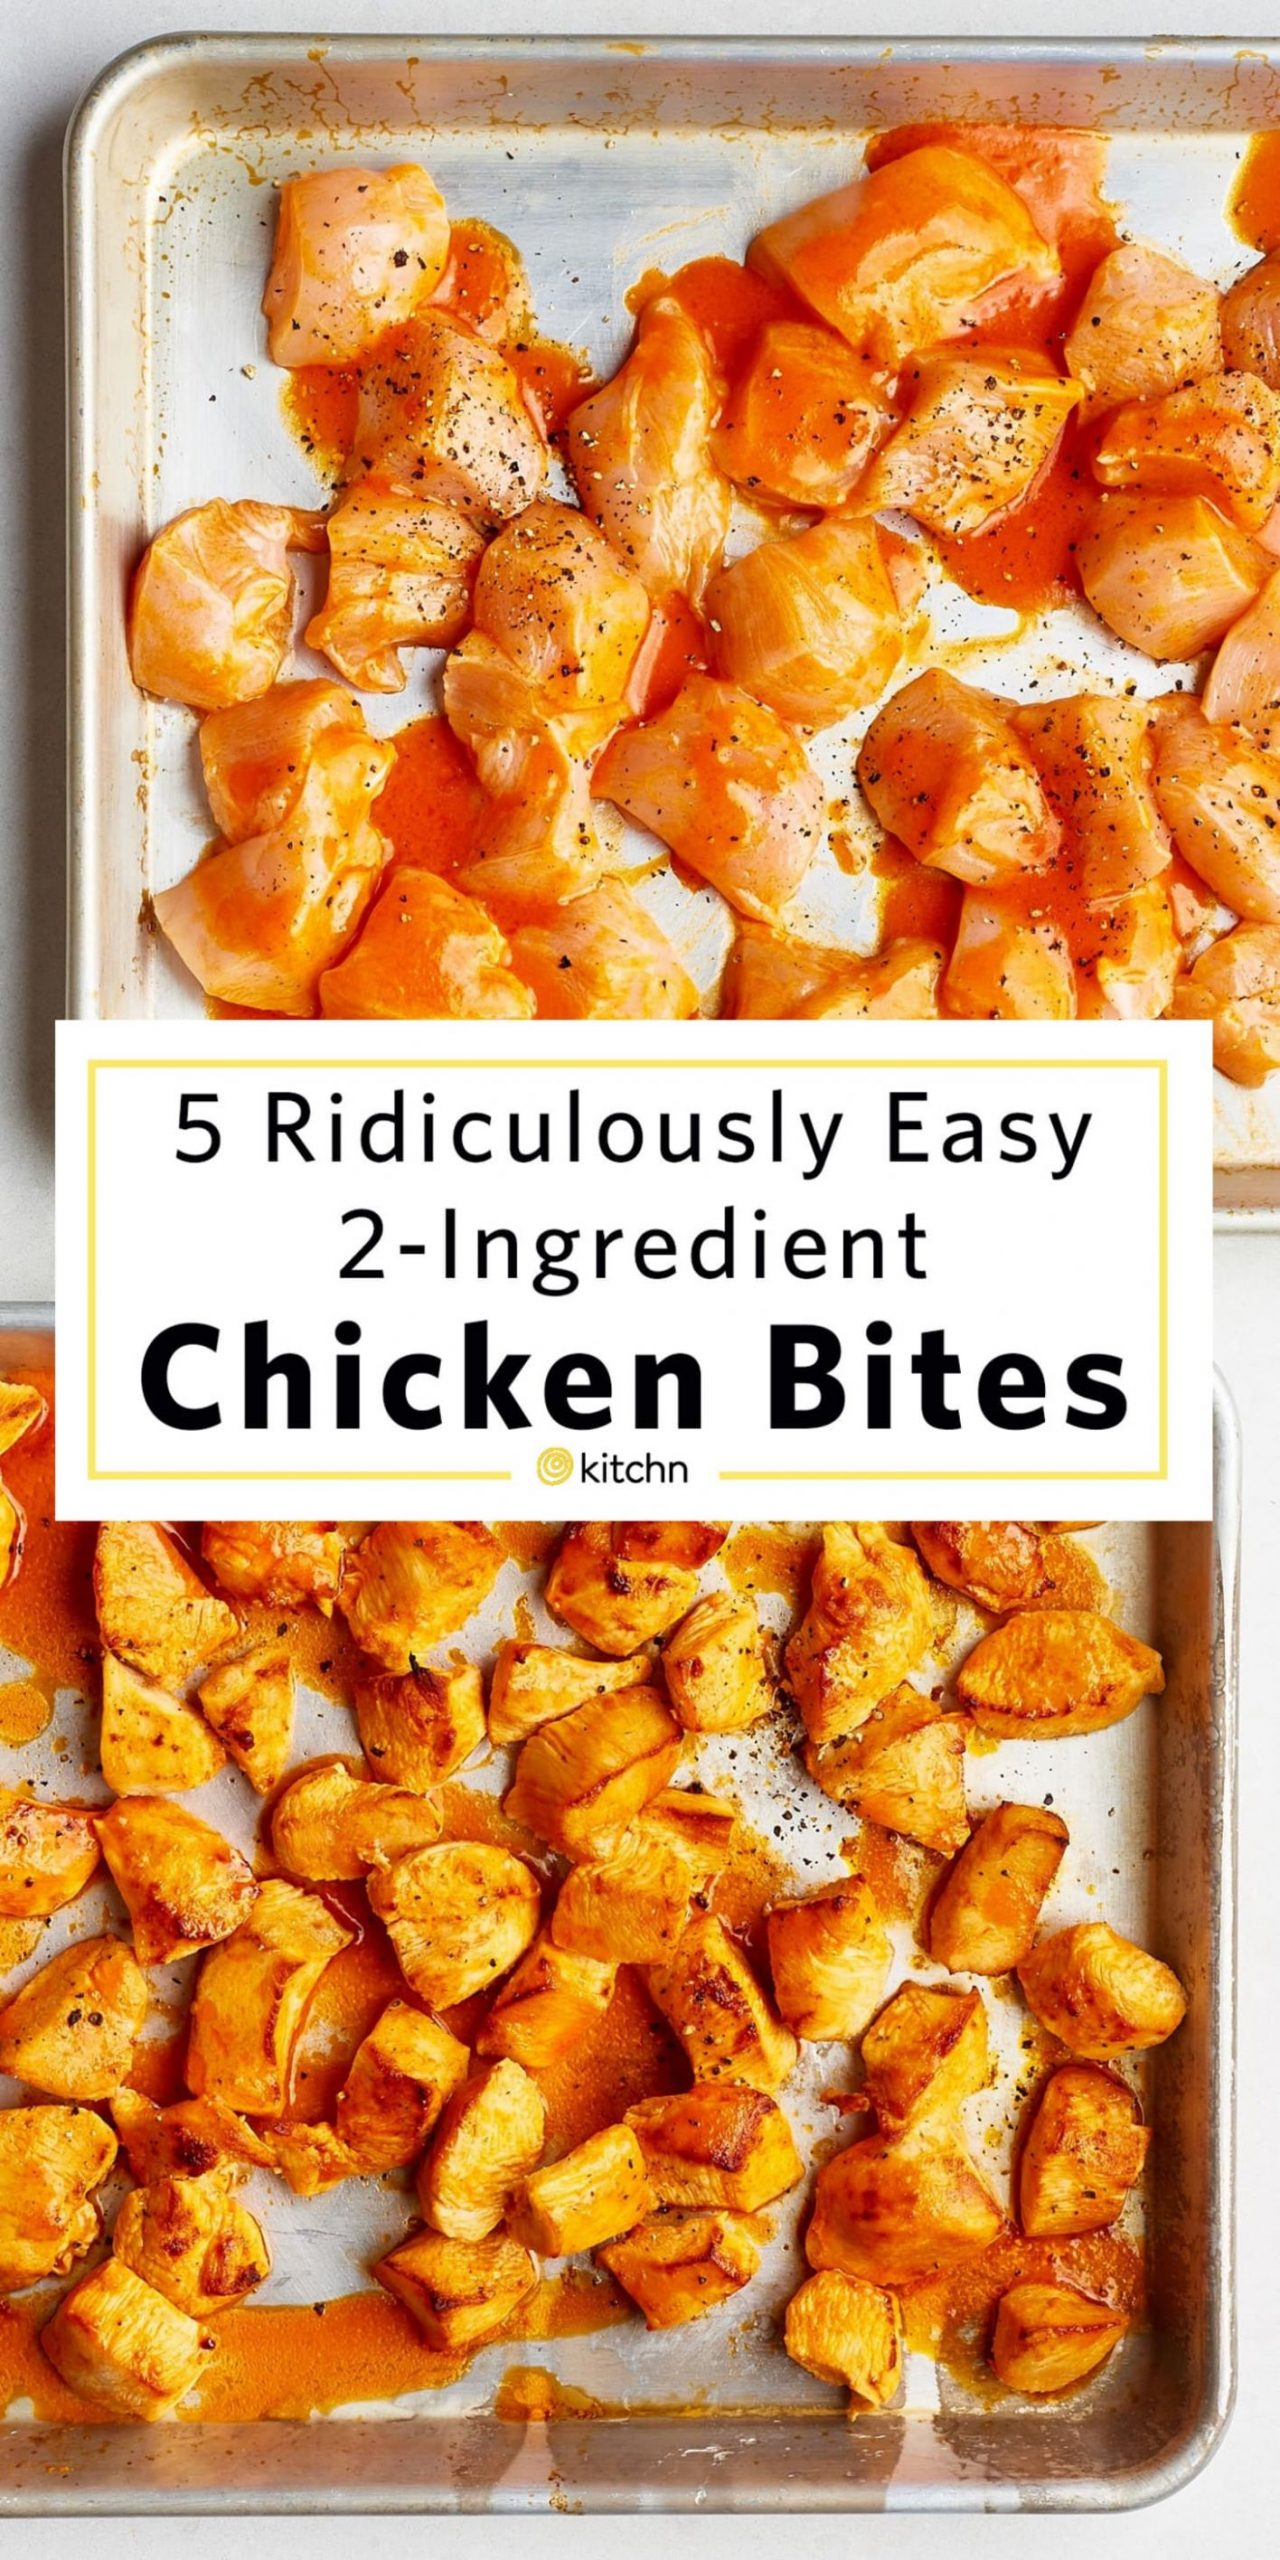 12 Fast and Easy Chicken Bite Recipes | Kitchn